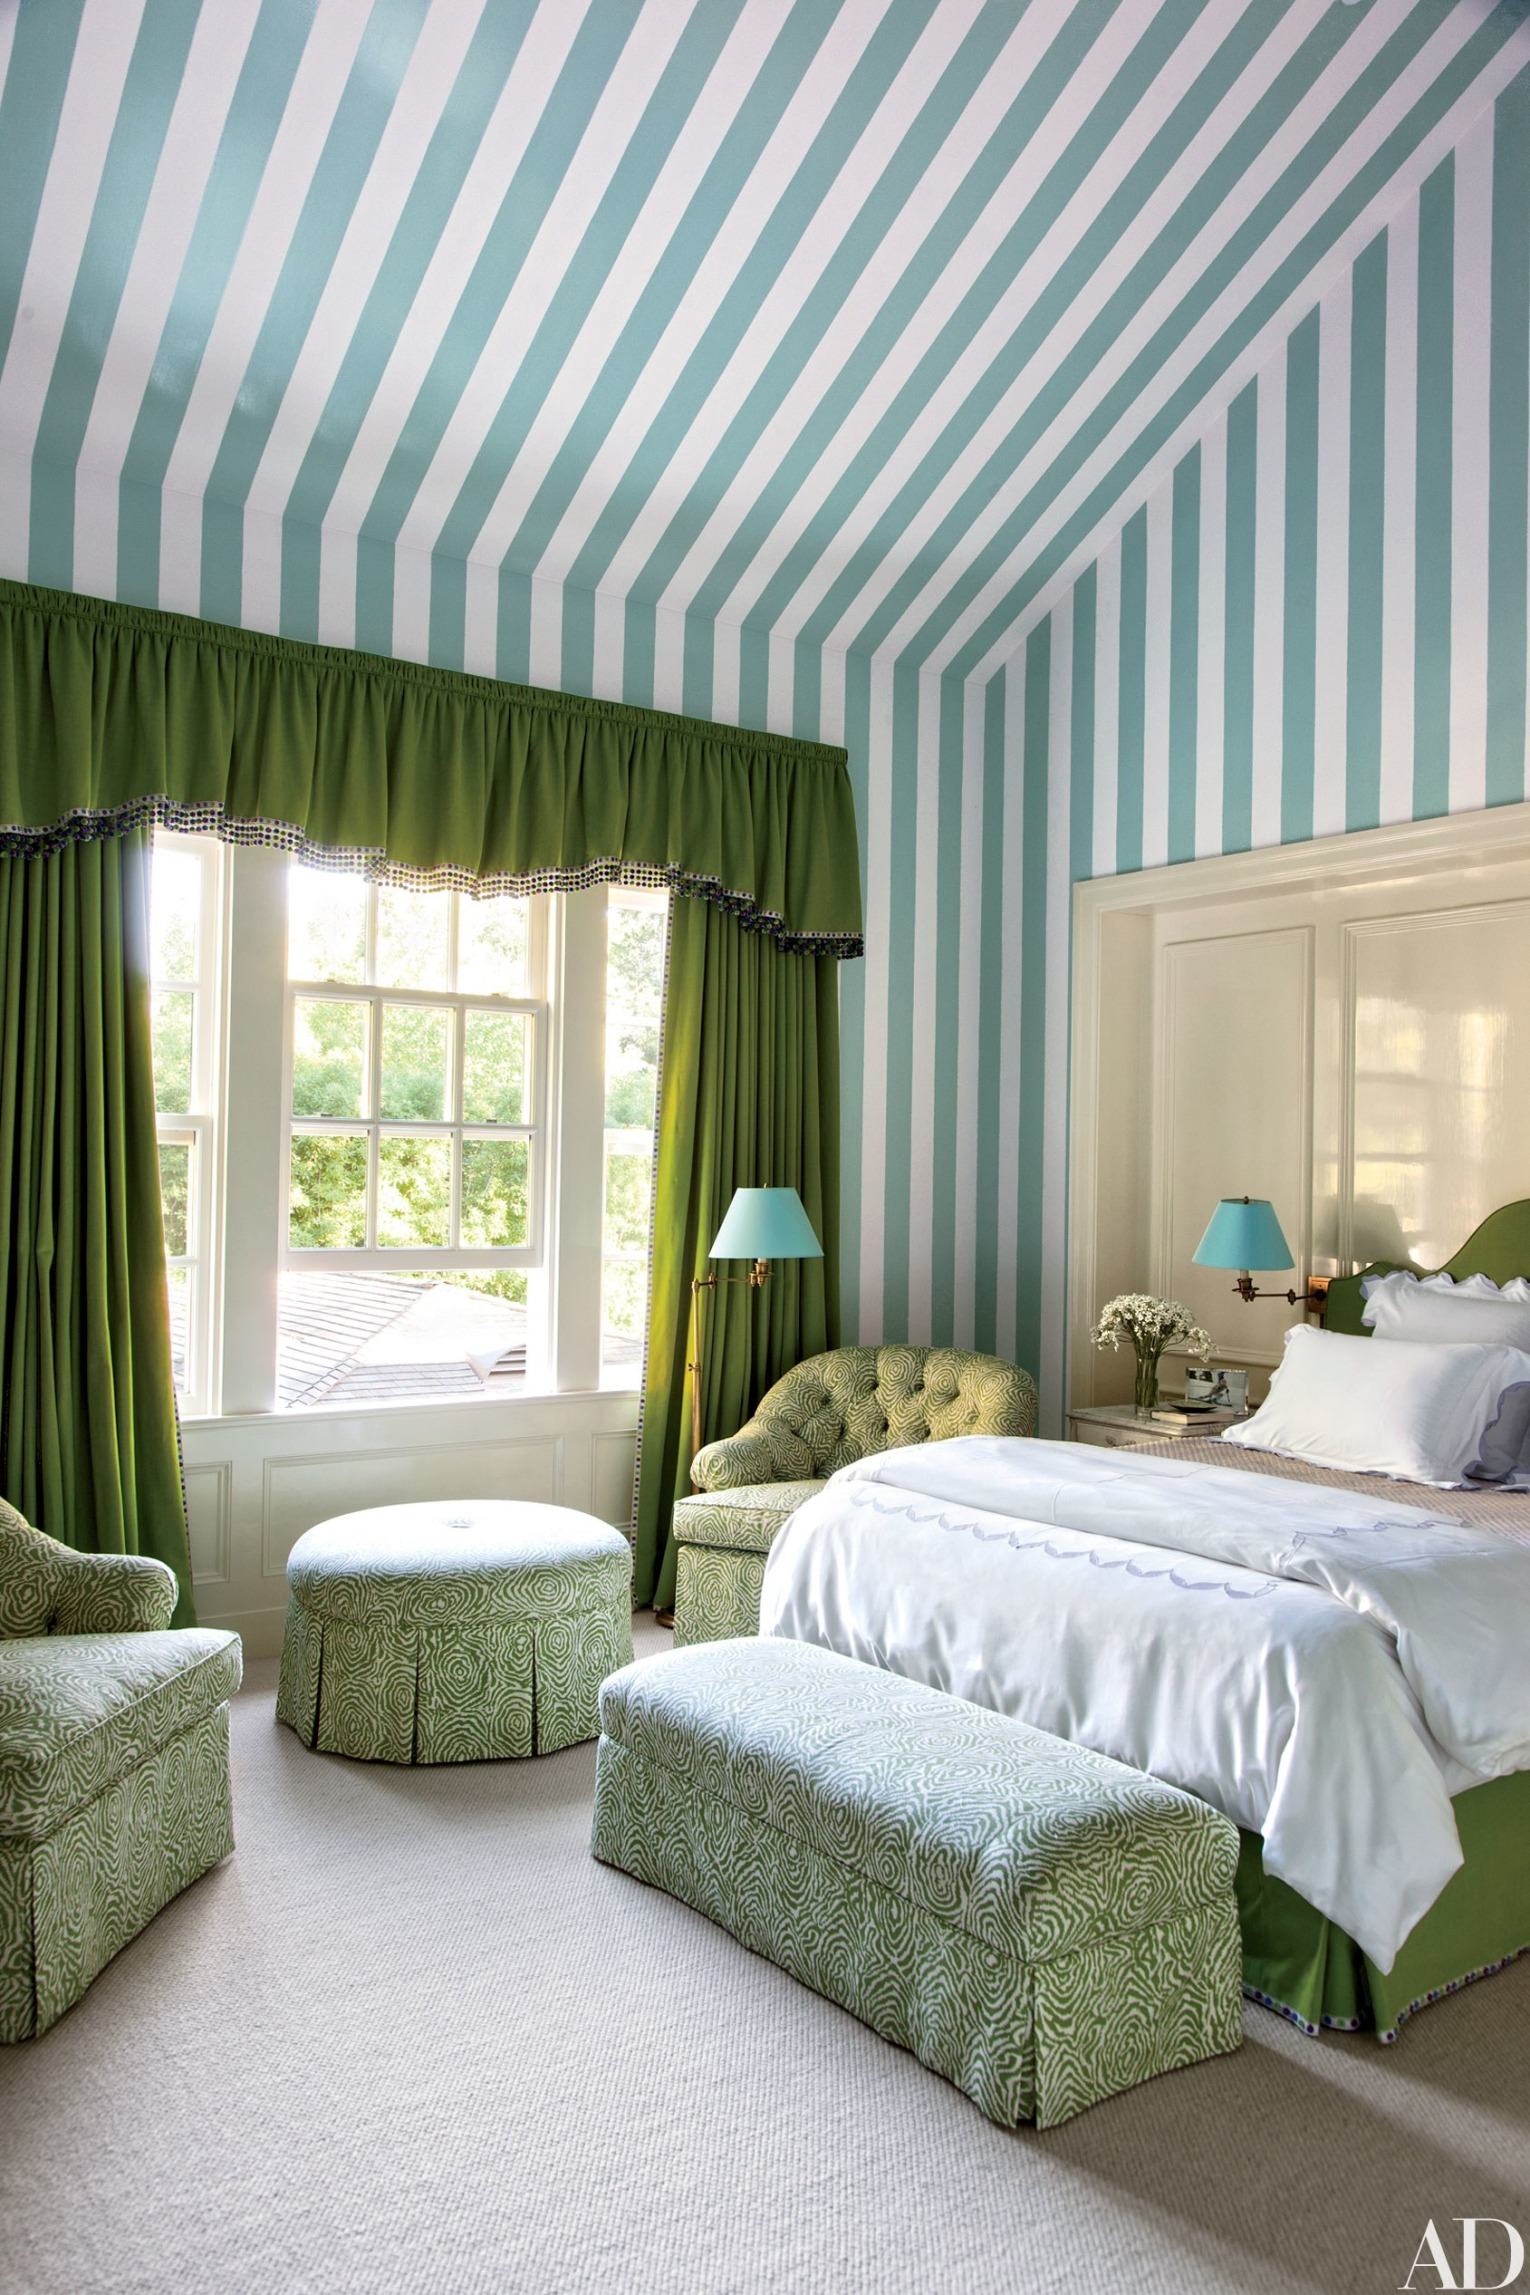 Stripes-of-Benjamin-Moore-white-and-blue-paints-enliven-a-daughter's-bedroom-wallpaper-wp5809782-1